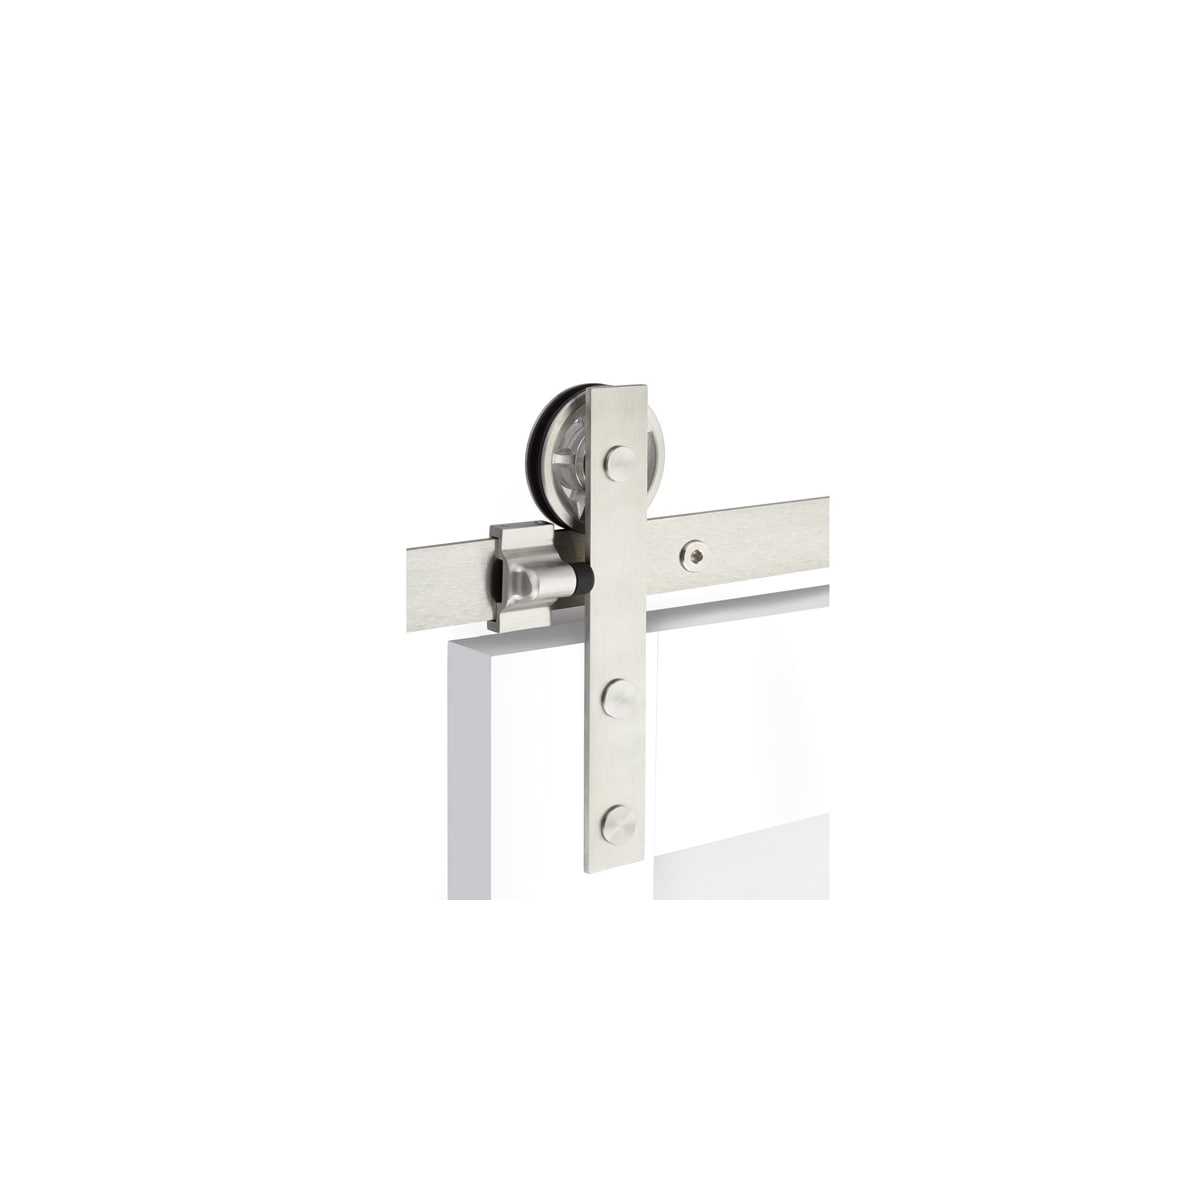 Emtek Modern Rectangular 120 Inch Face Mount Double Barn Door Hardware Set - Includes Track, Hangers, and Matching Hardware